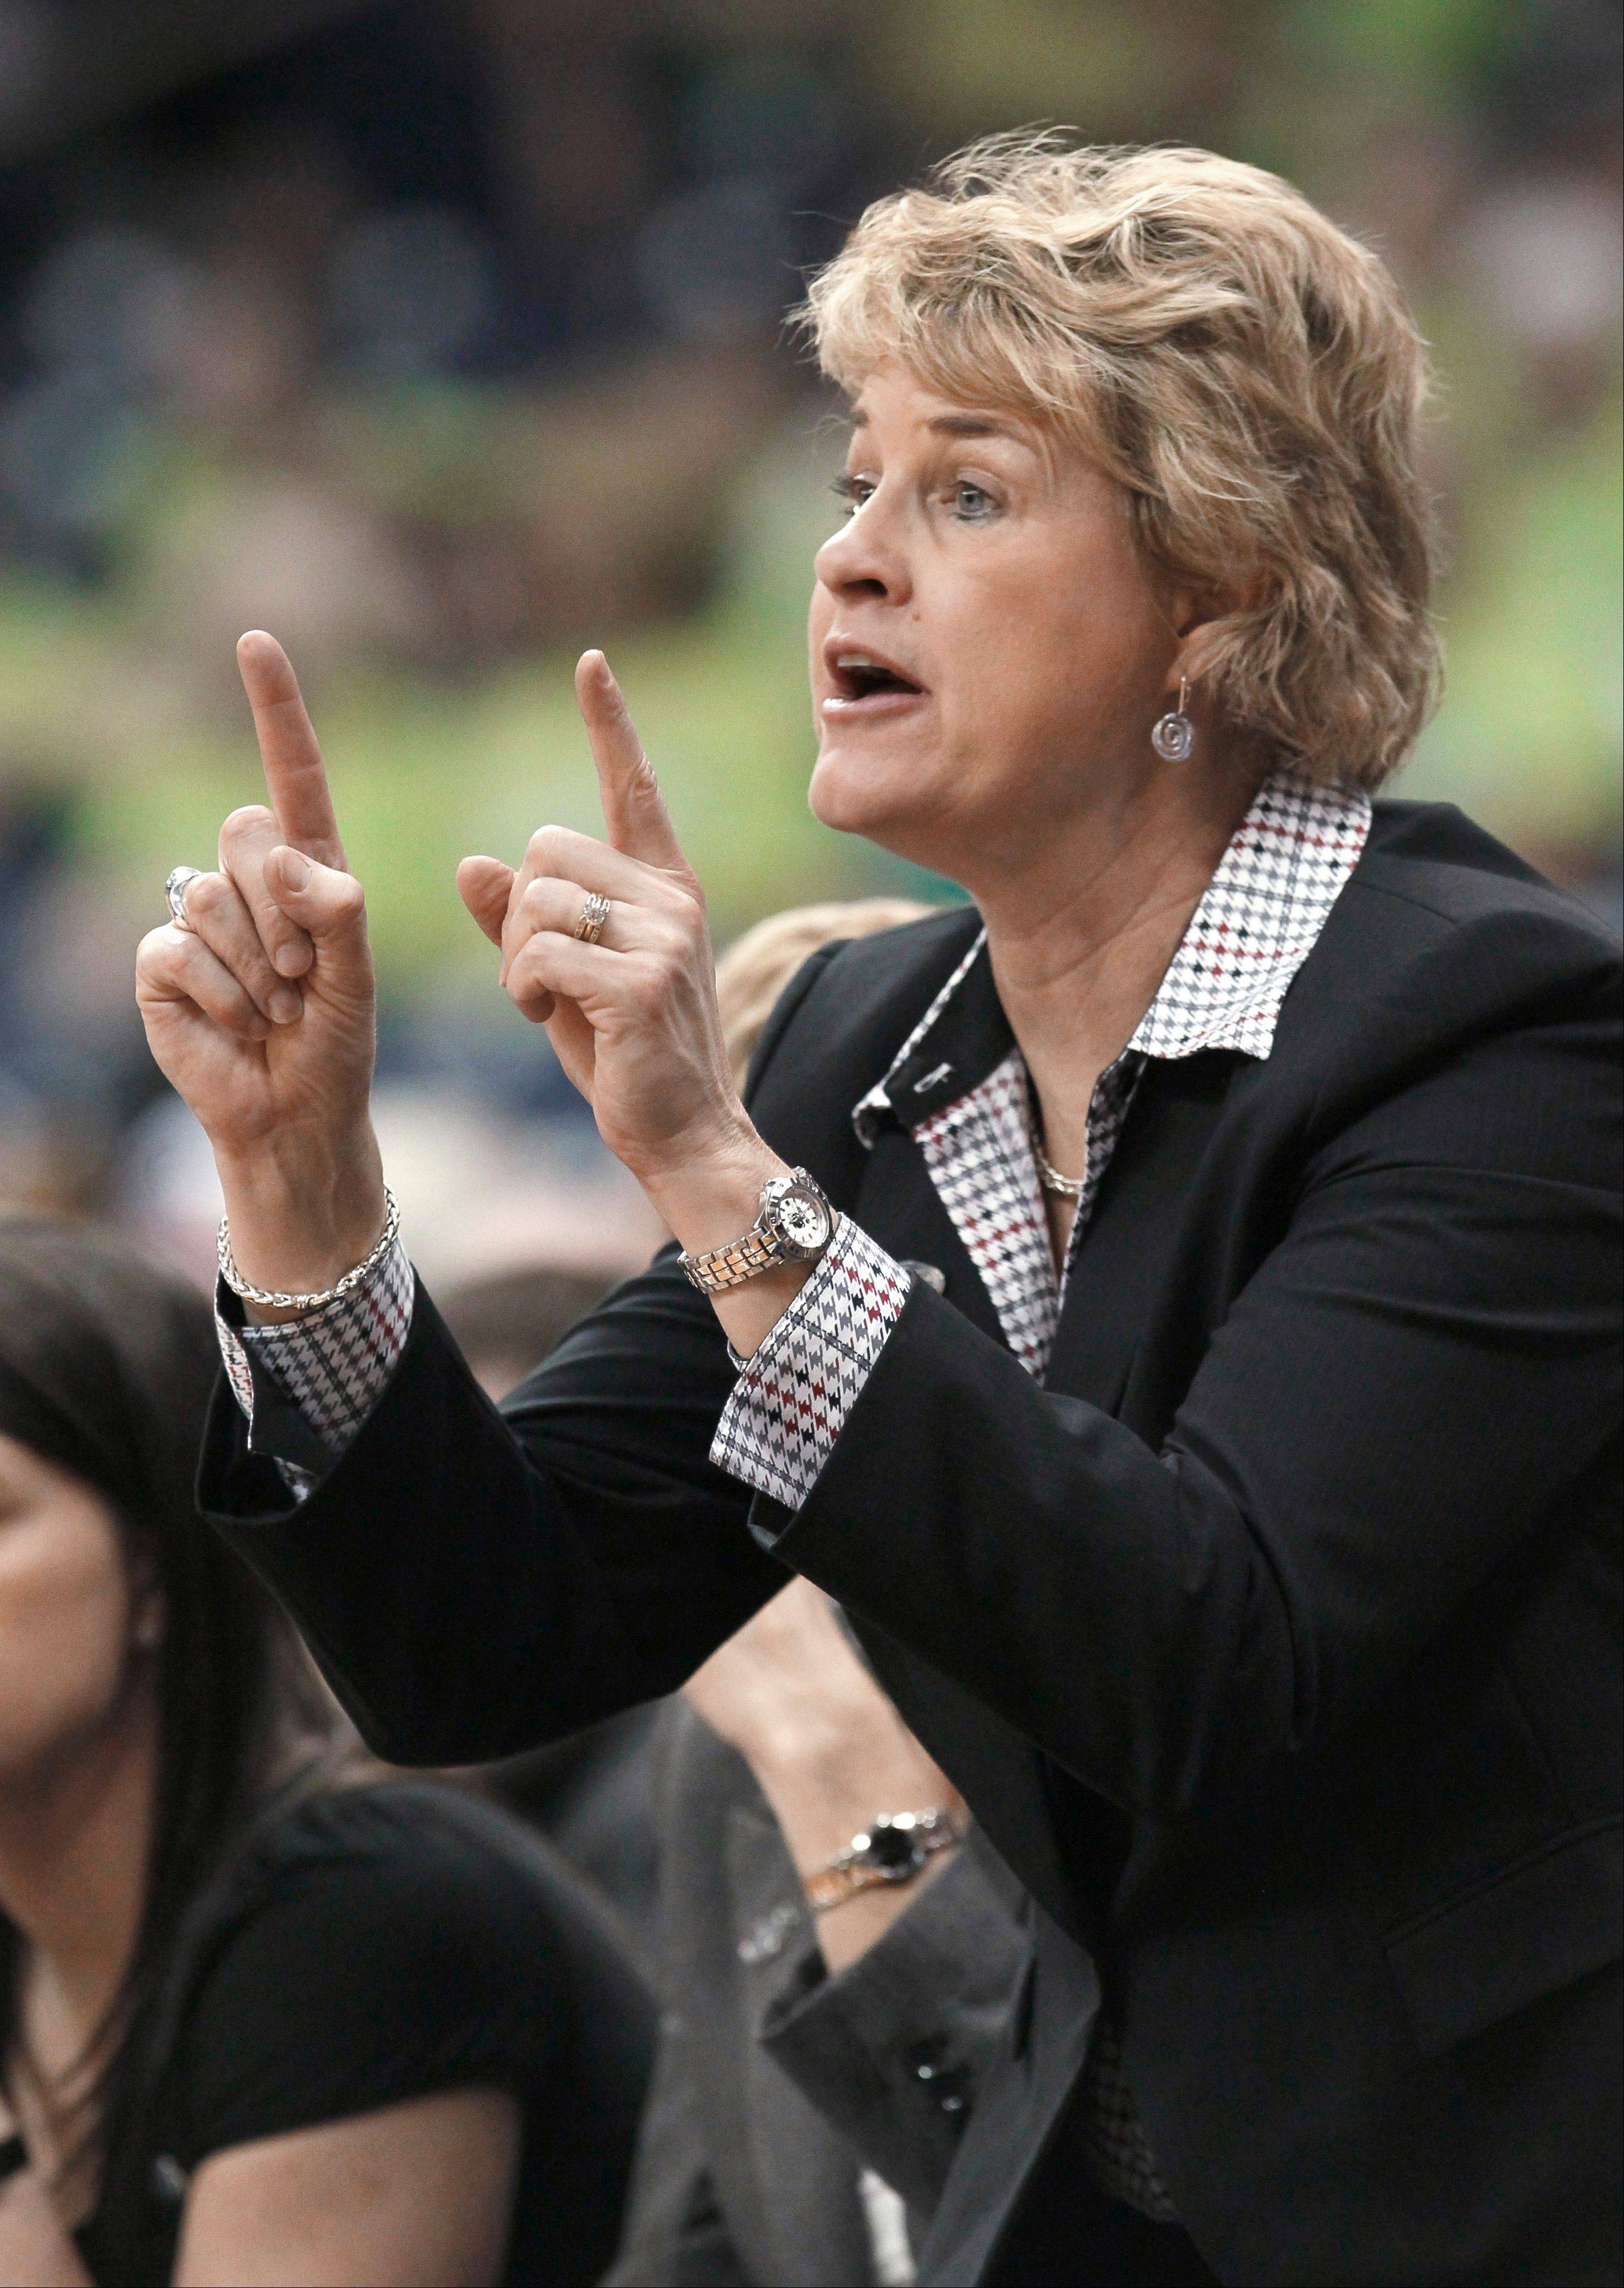 Iowa basketball coach Lisa Bluder is just the 25th Division I head coach to reach the 600-win milestone.